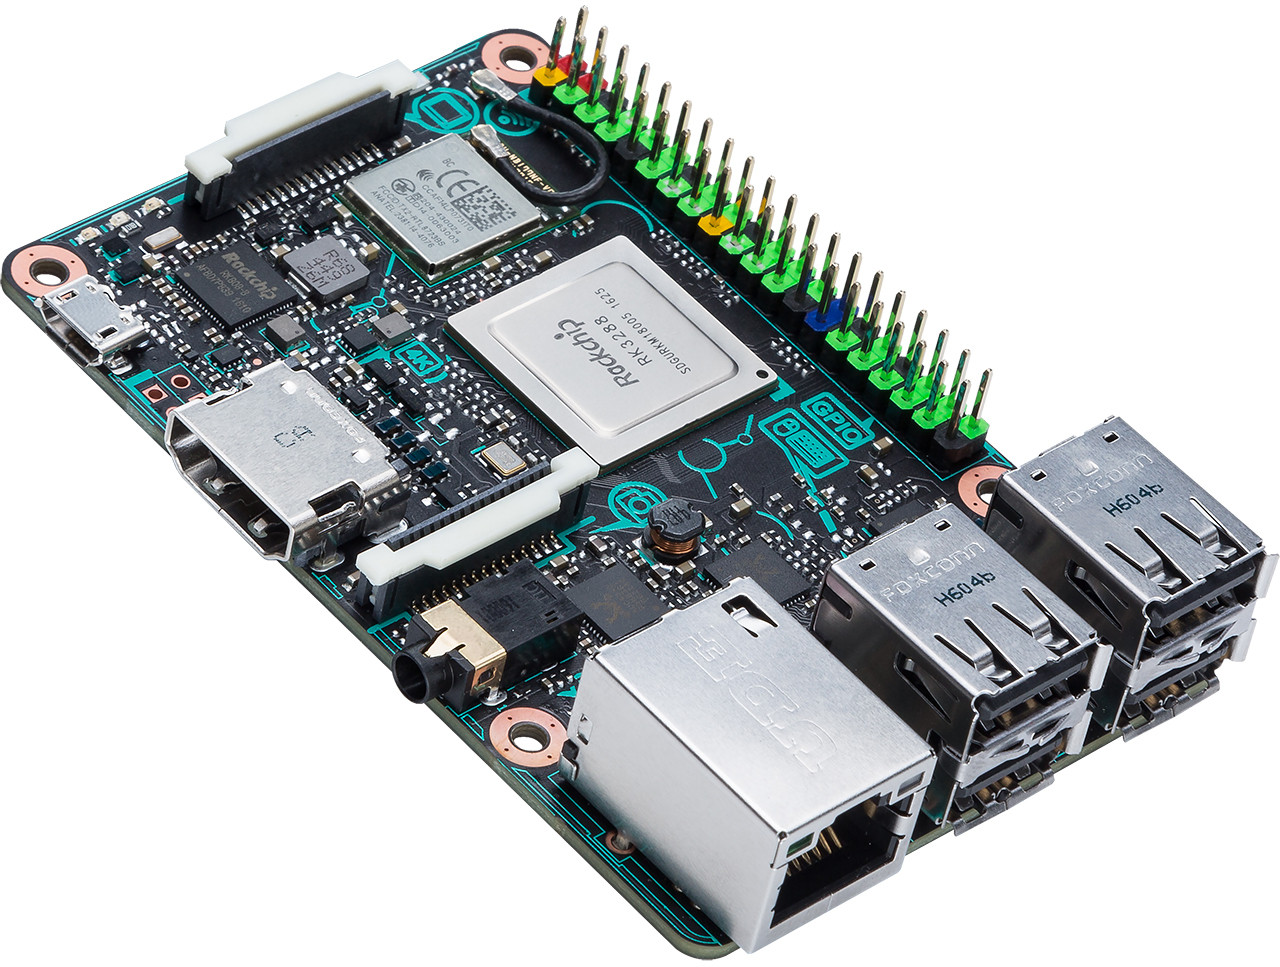 http://www.cnx-software.com/wp-content/uploads/2017/01/Asus-Tinker-Board-Large.jpg